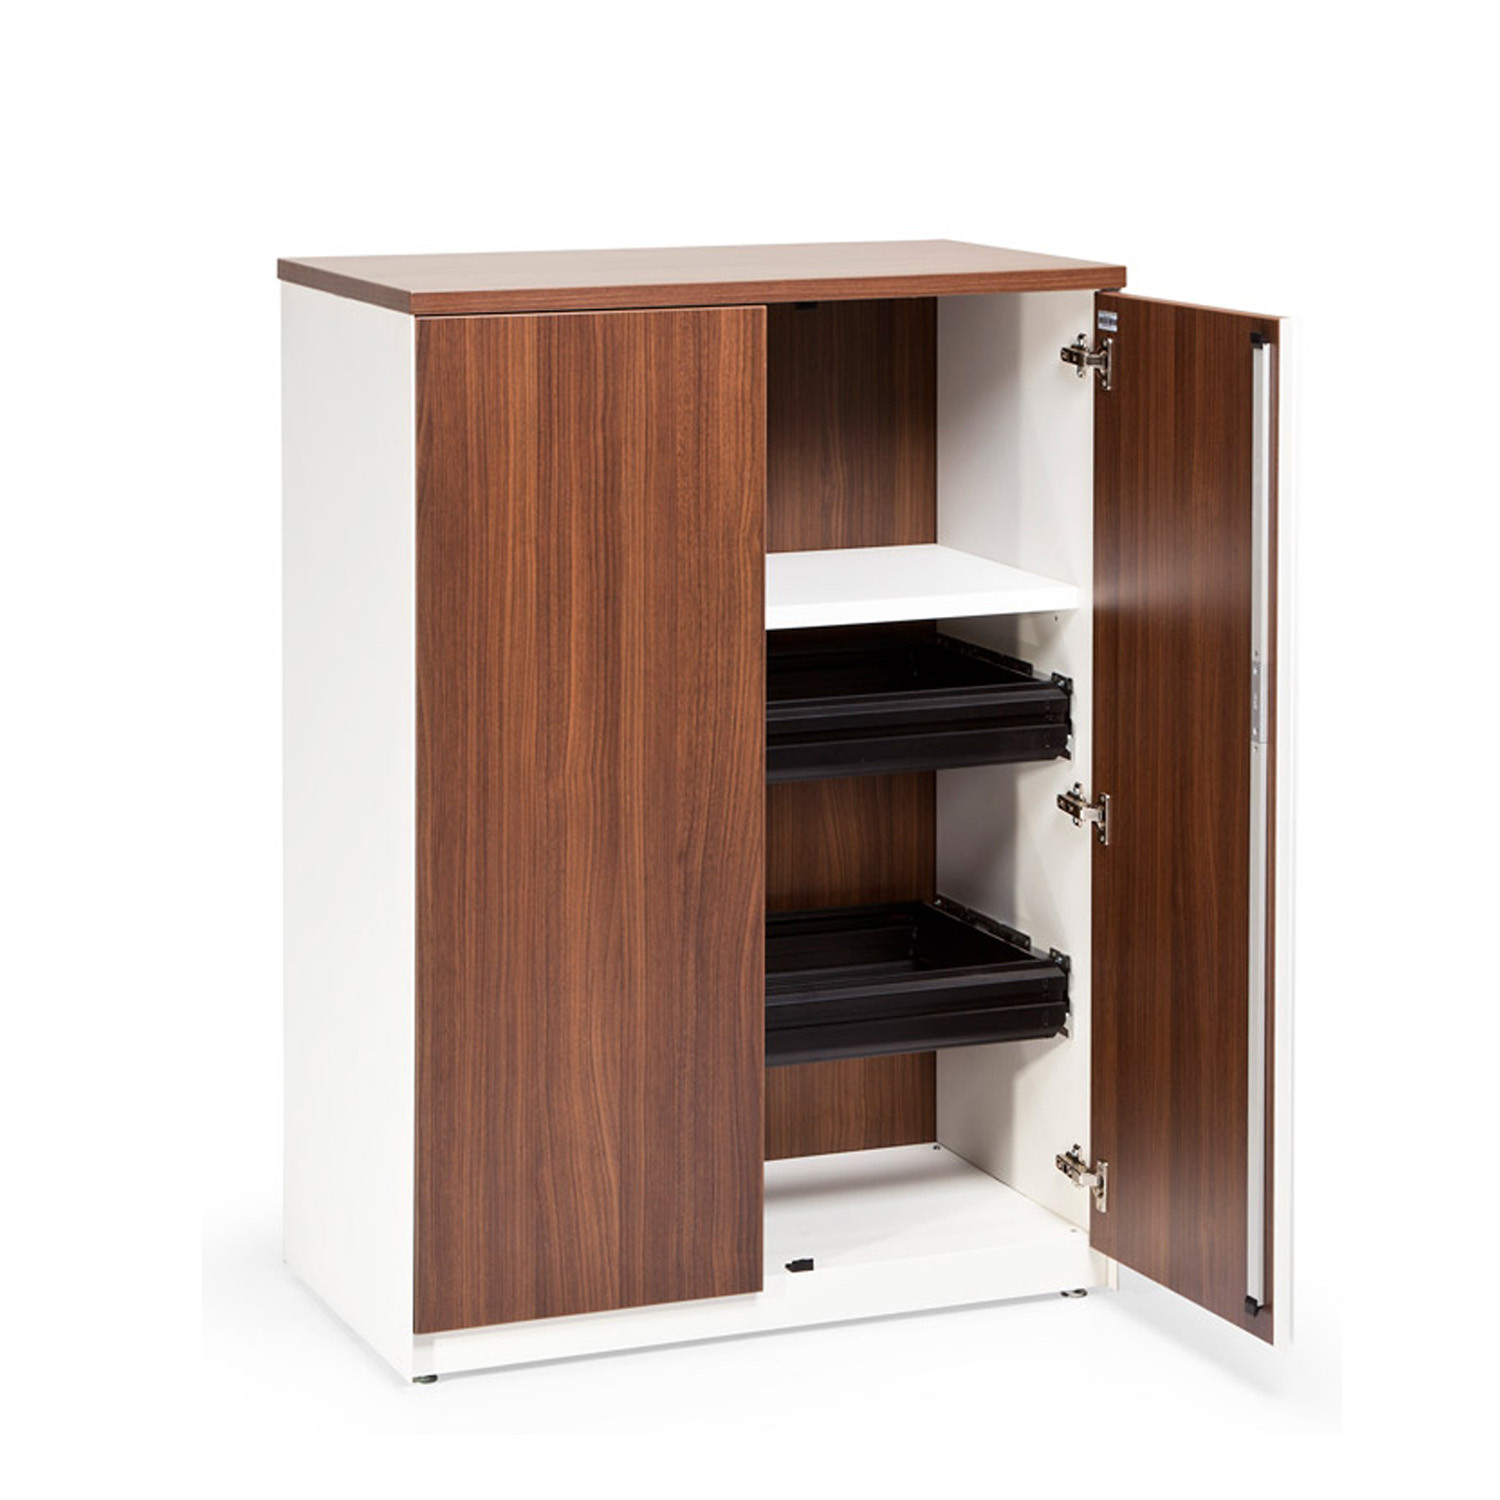 Path Office Cabinet for Storage